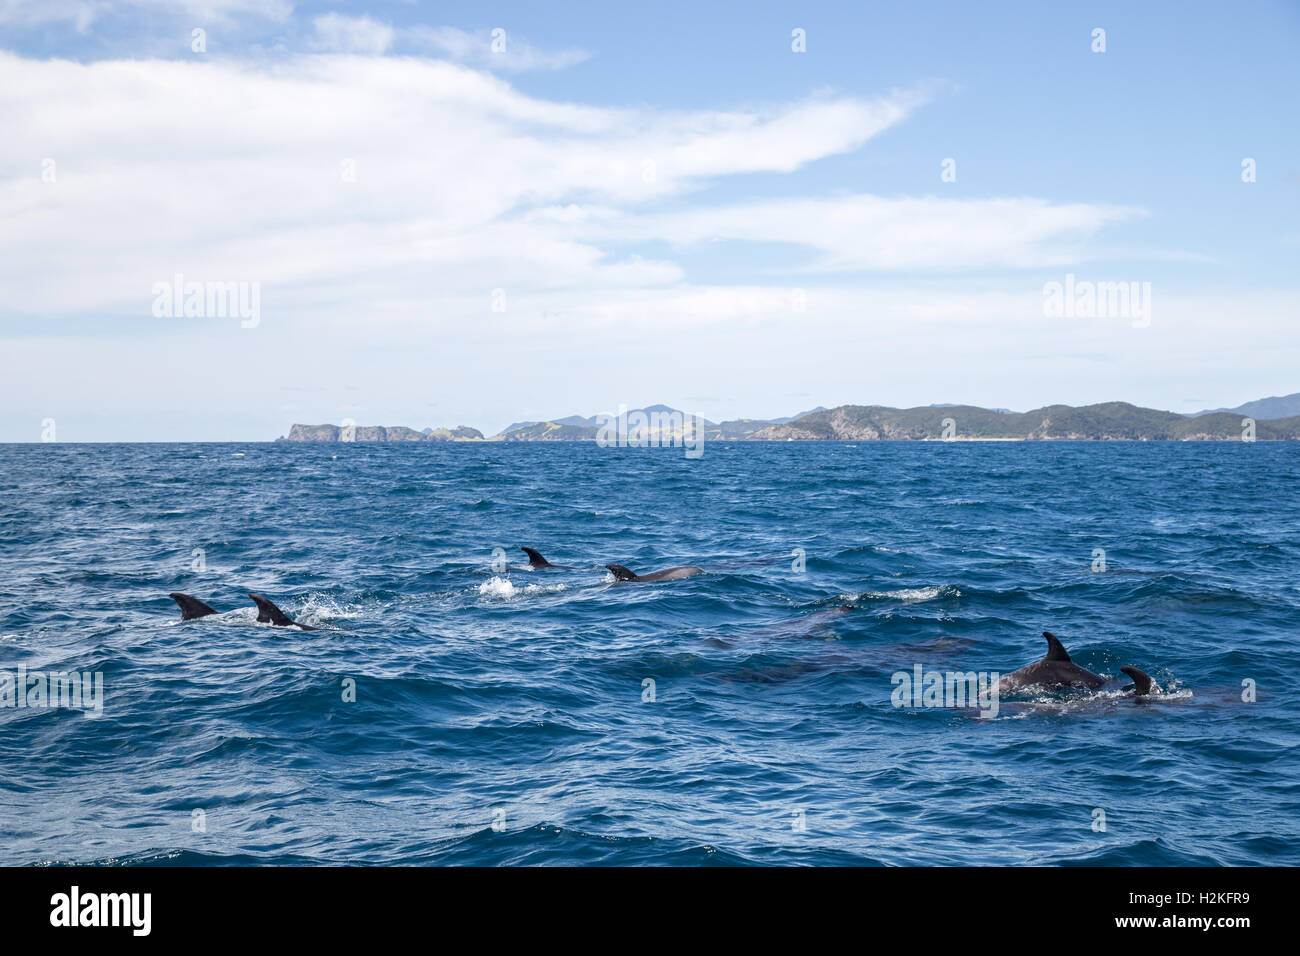 Bay of Islands dolphins Stock Photo